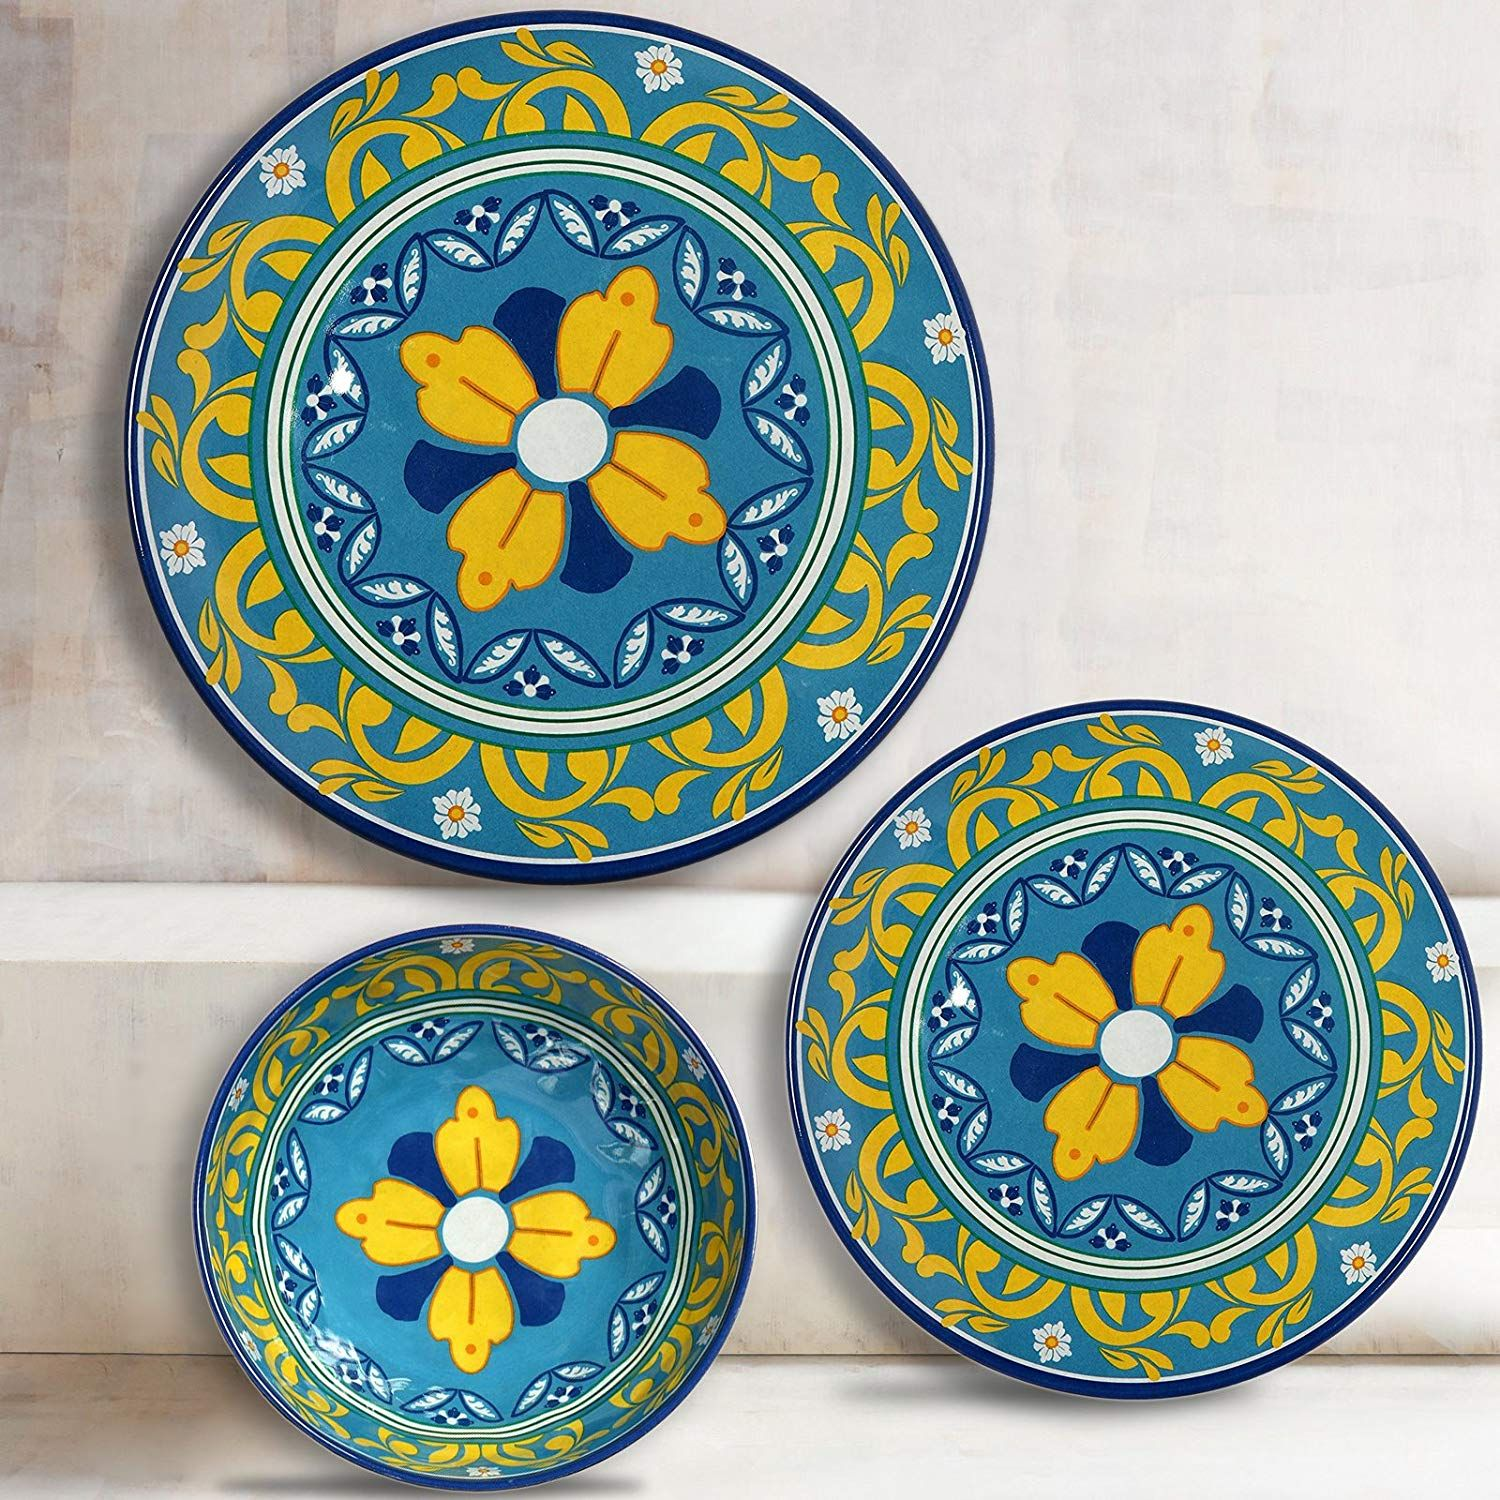 Amazon Com Melange 6 Piece 100 Melamine Dinner Plate Set Florence Collection Shatter Proof And Ch Melamine Dinner Plates Dinner Plate Sets Dinner Plates